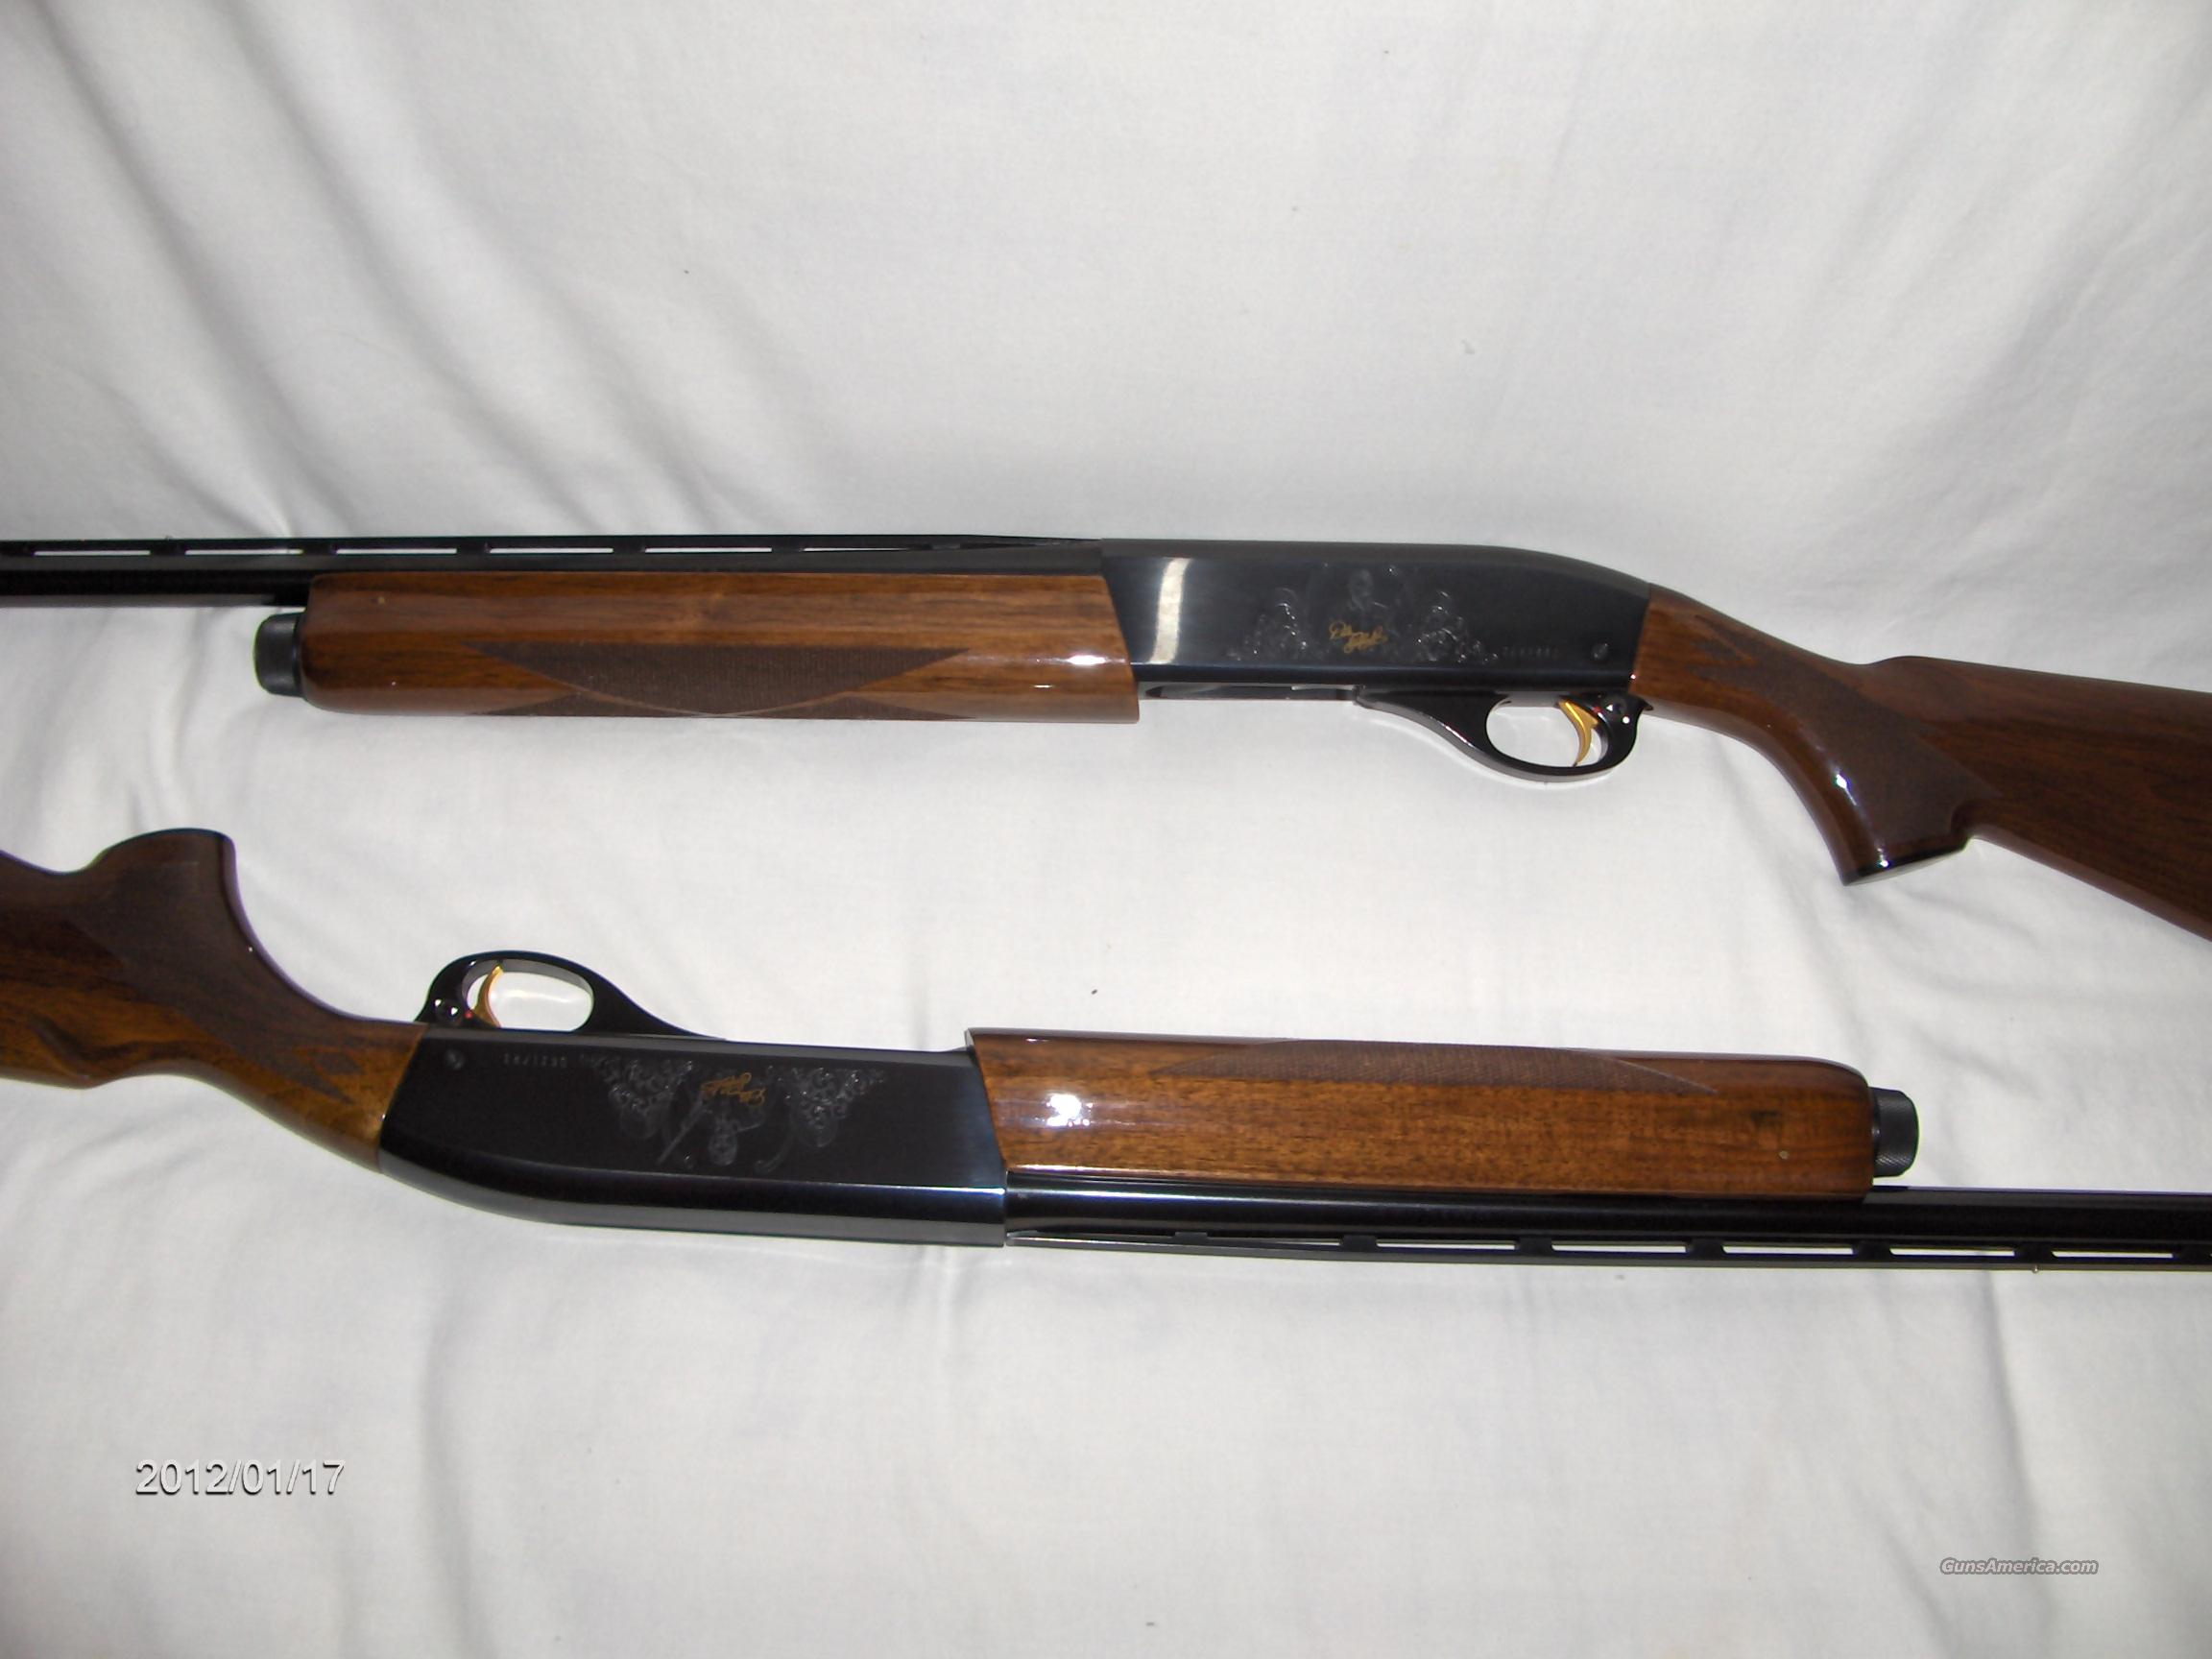 11-87 Premier Dale Earnhardt   Guns > Shotguns > Remington Shotguns  > Autoloaders > Trap/Skeet